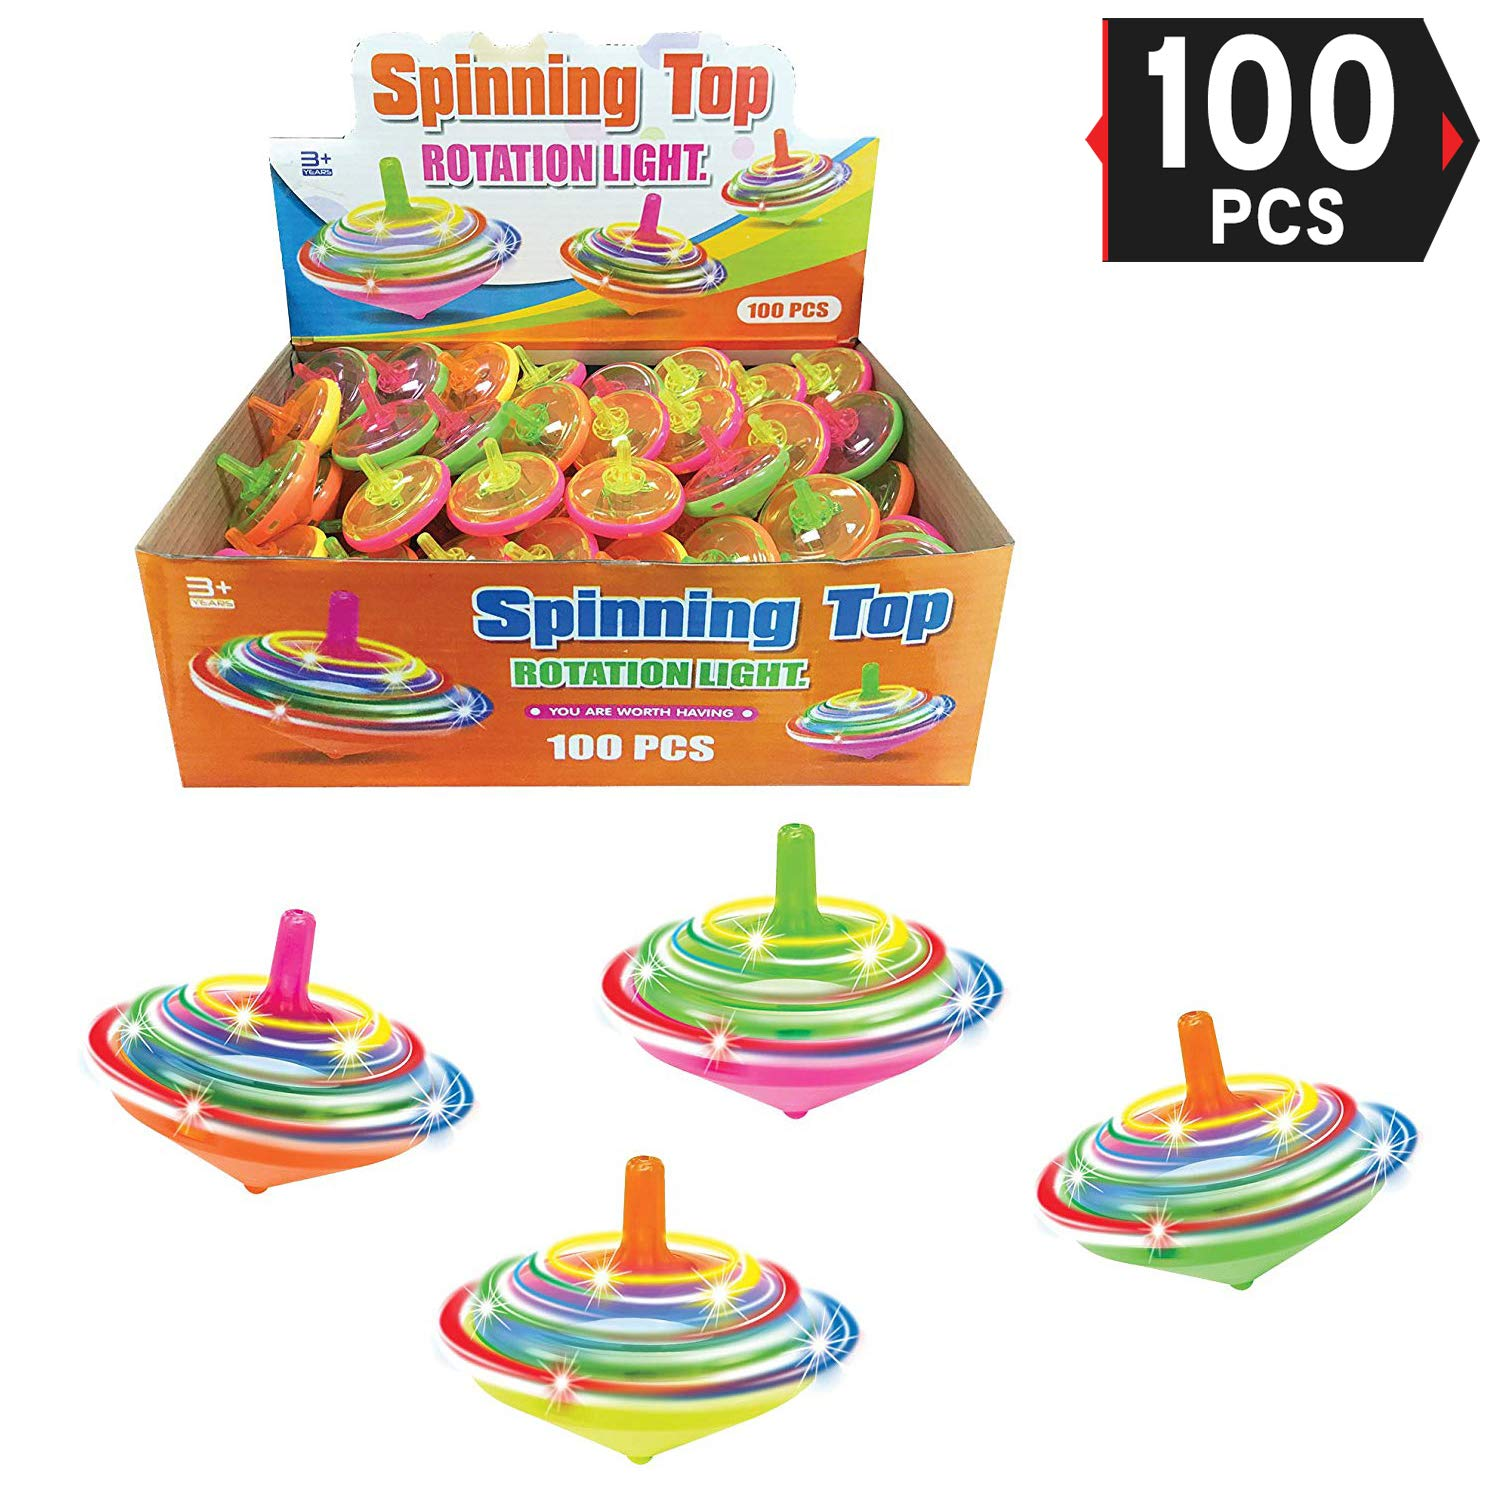 Value Bundle - 100 Pieces LED Light Up Flashing Mini Spinning Tops with Gyroscope - Kids Novelty Bulk Spin Toys Party Favors by Liberty Imports